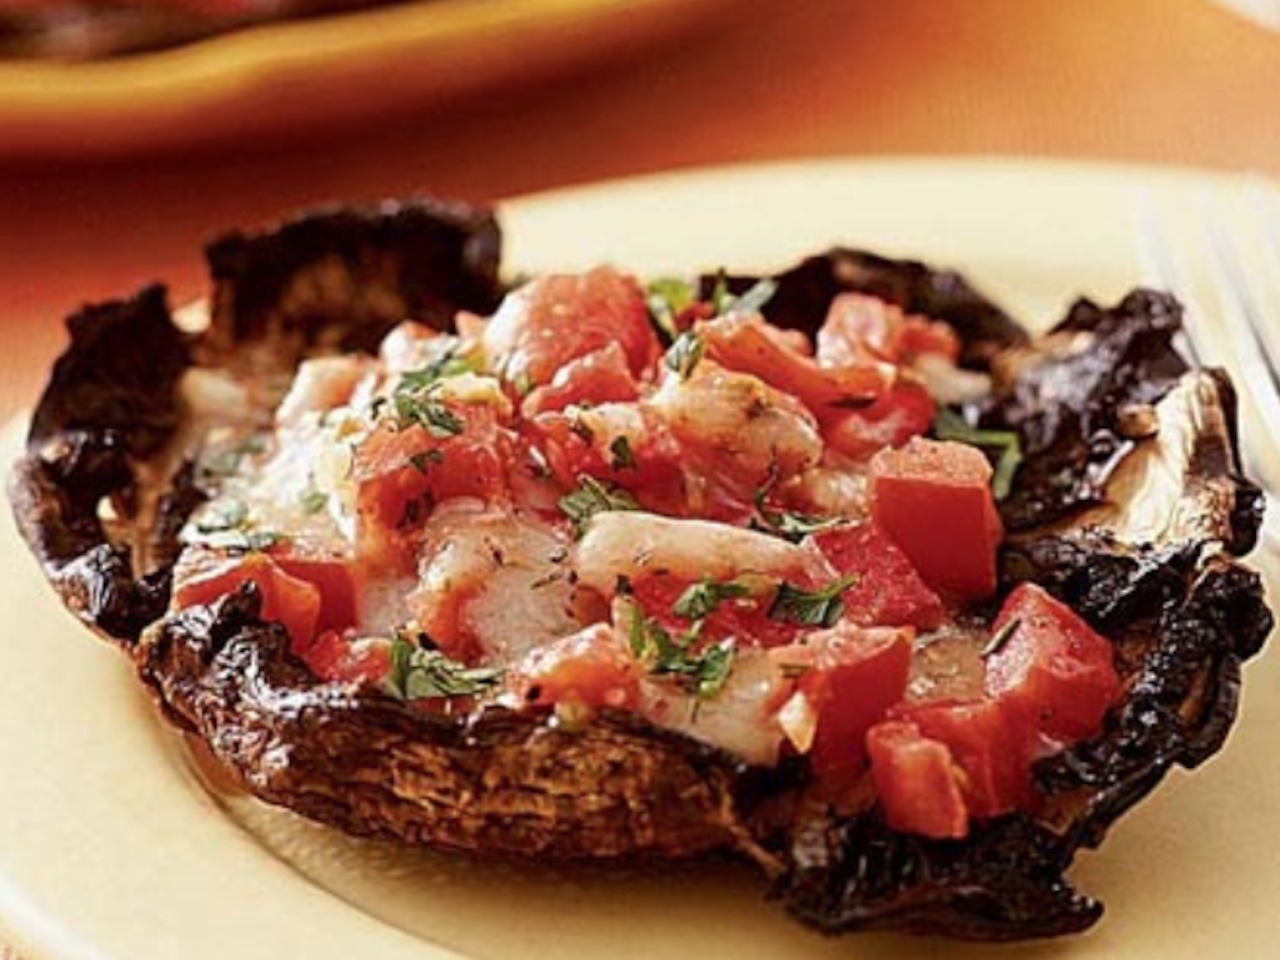 """<p>If you're looking for an easy crowd-pleaser, grilled portobello mushrooms are the way to go. These giant portobello mushrooms are stuffed with some incredibly tasty ingredients like cheese, tomatoes, and fresh herbs, and are then grilled to absolute perfection. This recipe works well as an <a href=""""https://www.myrecipes.com/appetizer-recipes/"""">appetizer</a> or even as an impressive side dish. In the store, look for portobello mushrooms that have a clean exterior and aren't bruised on the caps. Also, because you're stuffing them, look for mushrooms with small stems that will be easier to remove. If you aren't crazy about mozzarella, feel free to use another type of cheese, such as Parmesan, instead. </p> <p><a href=""""https://www.myrecipes.com/recipe/grilled-stuffed-portobello-mushrooms"""">Grilled Stuffed Portobello Mushrooms Recipe</a></p>"""